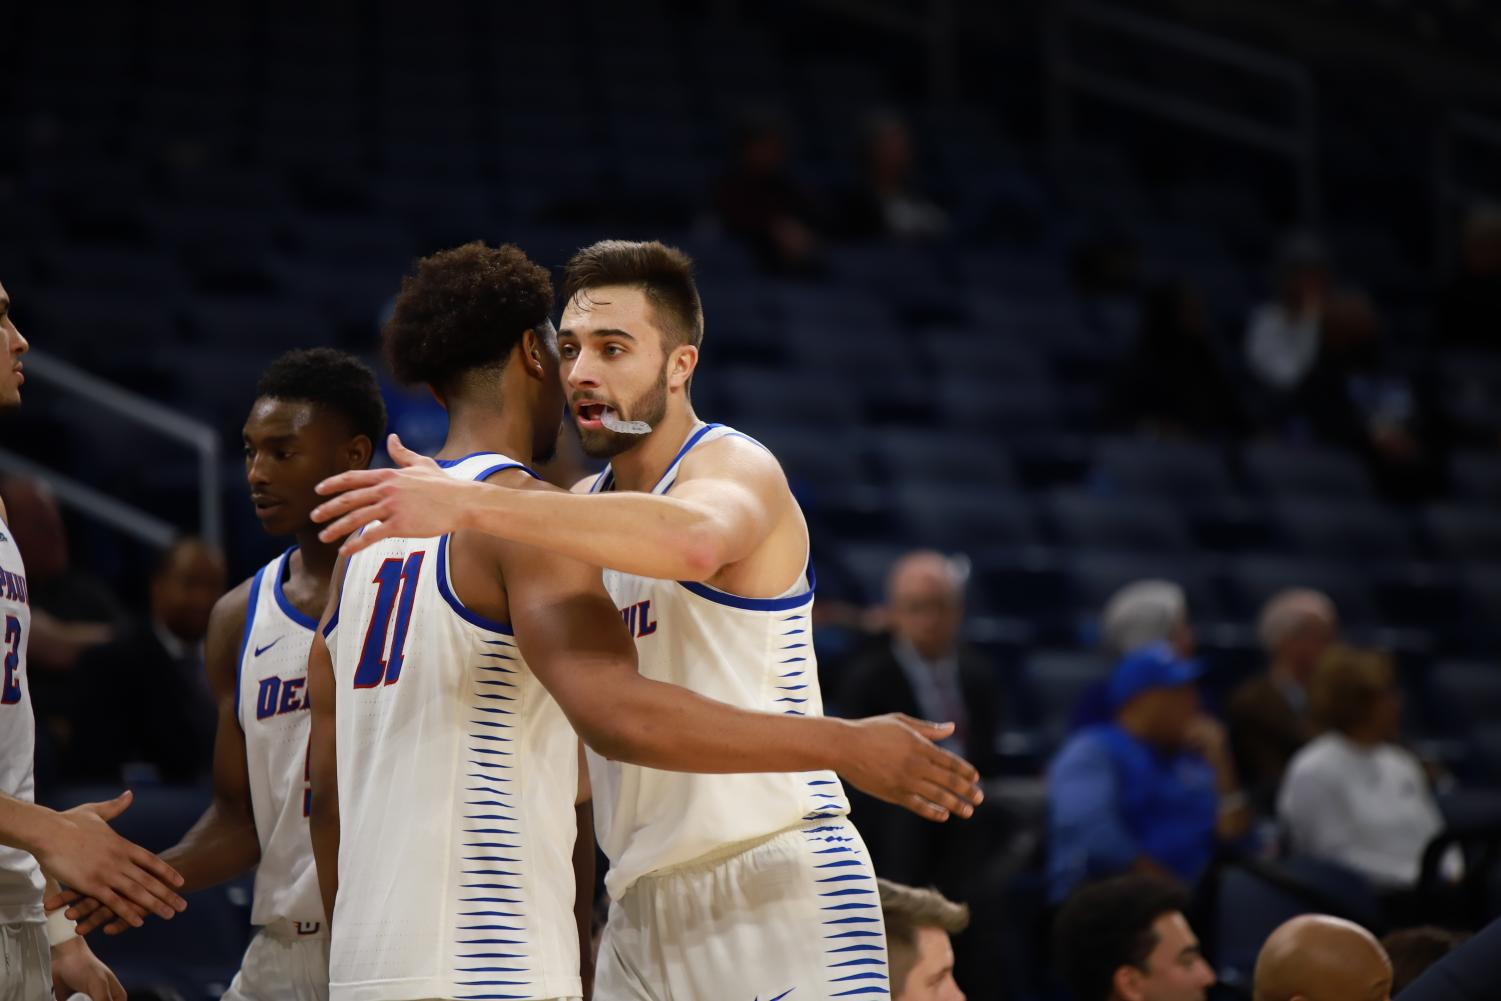 DePaul seniors Eli Cain and Max Strus celebrate the Blue Demons 80-58 win over Bethune-Cookman.  Shane Rene | The DePaulia